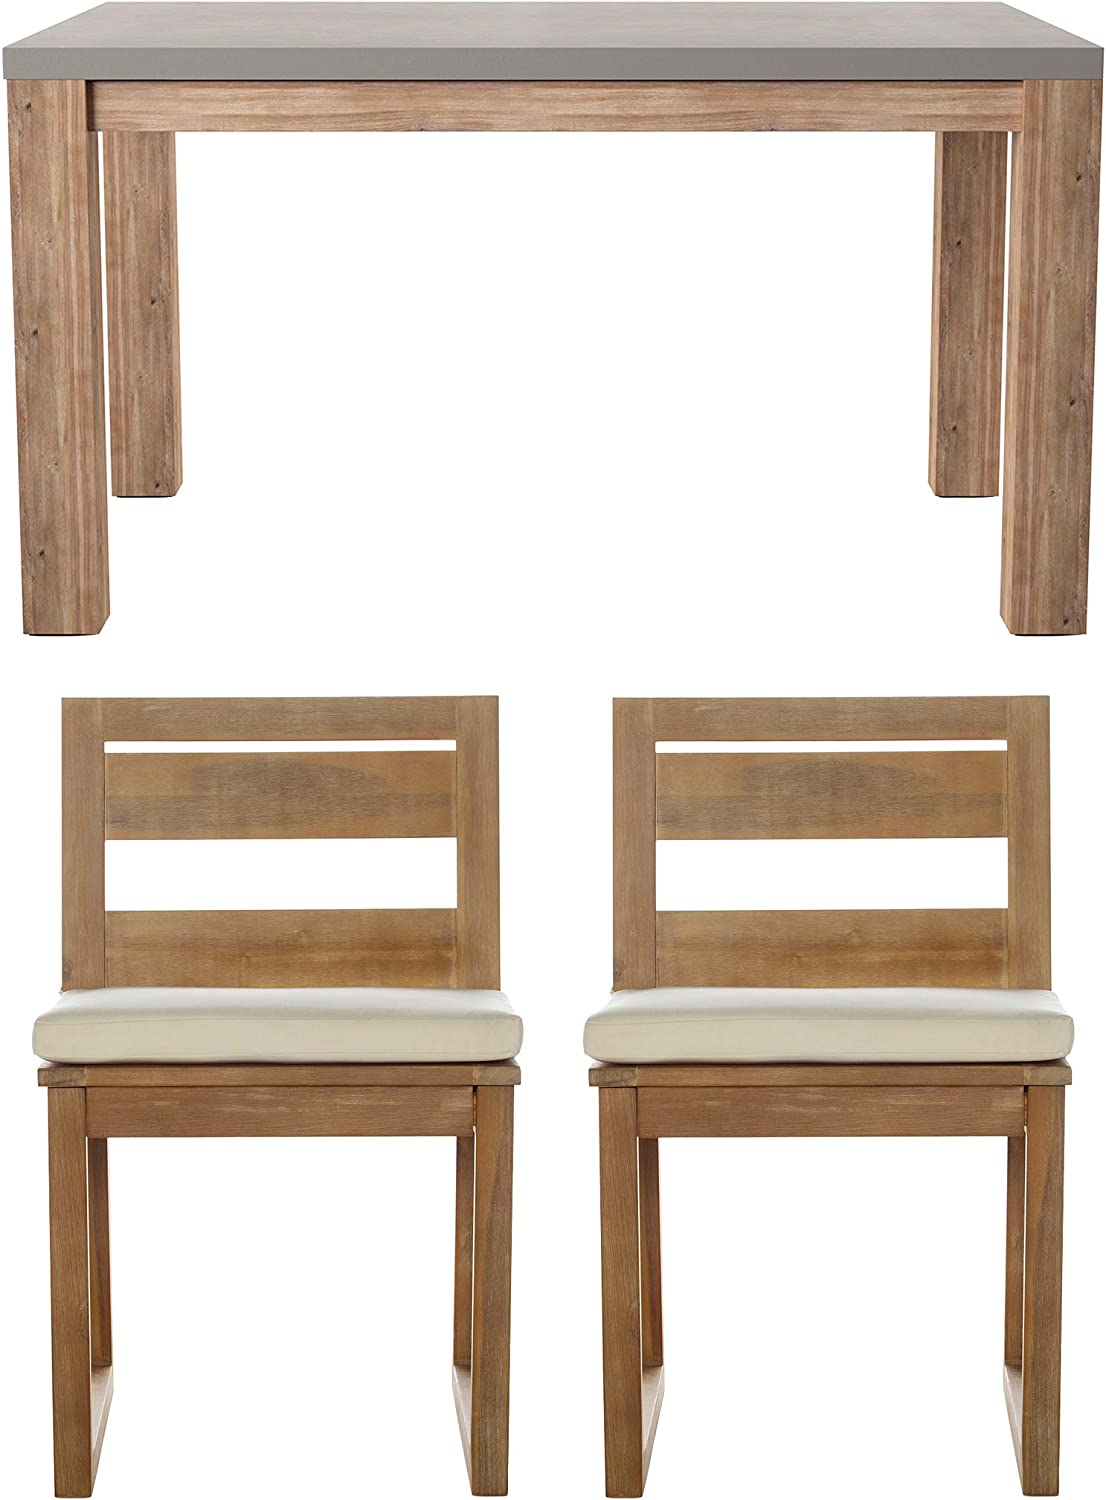 SEI Furniture AMZ207501DO Sarsden Outdoor Dining Set, Distressed Natural w/Ivory Cushions